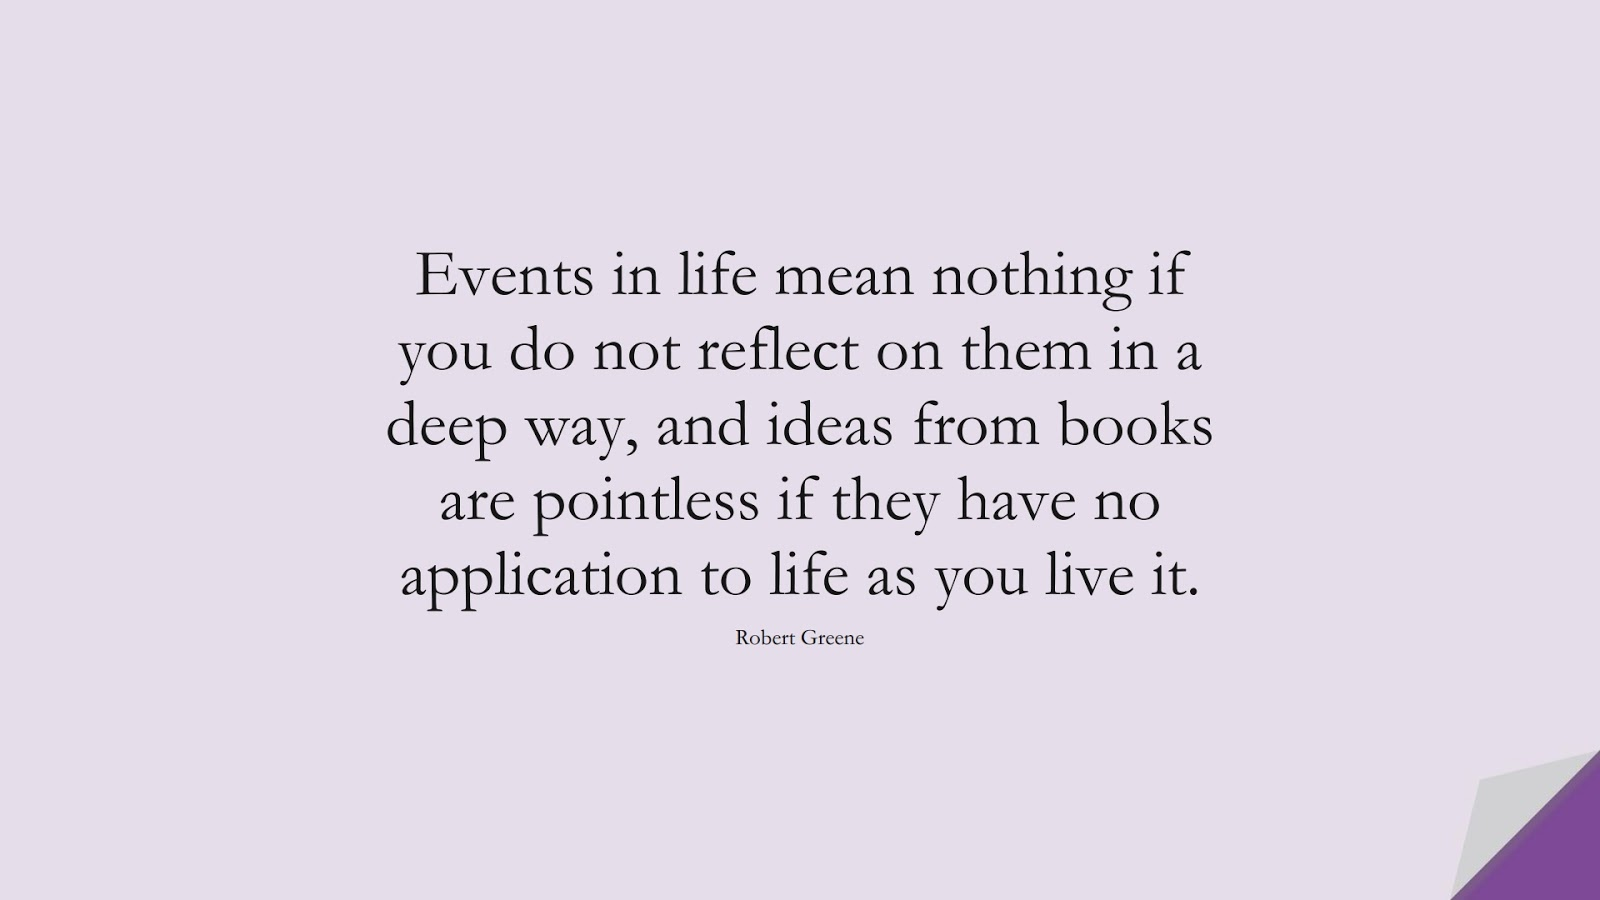 Events in life mean nothing if you do not reflect on them in a deep way, and ideas from books are pointless if they have no application to life as you live it. (Robert Greene);  #StoicQuotes